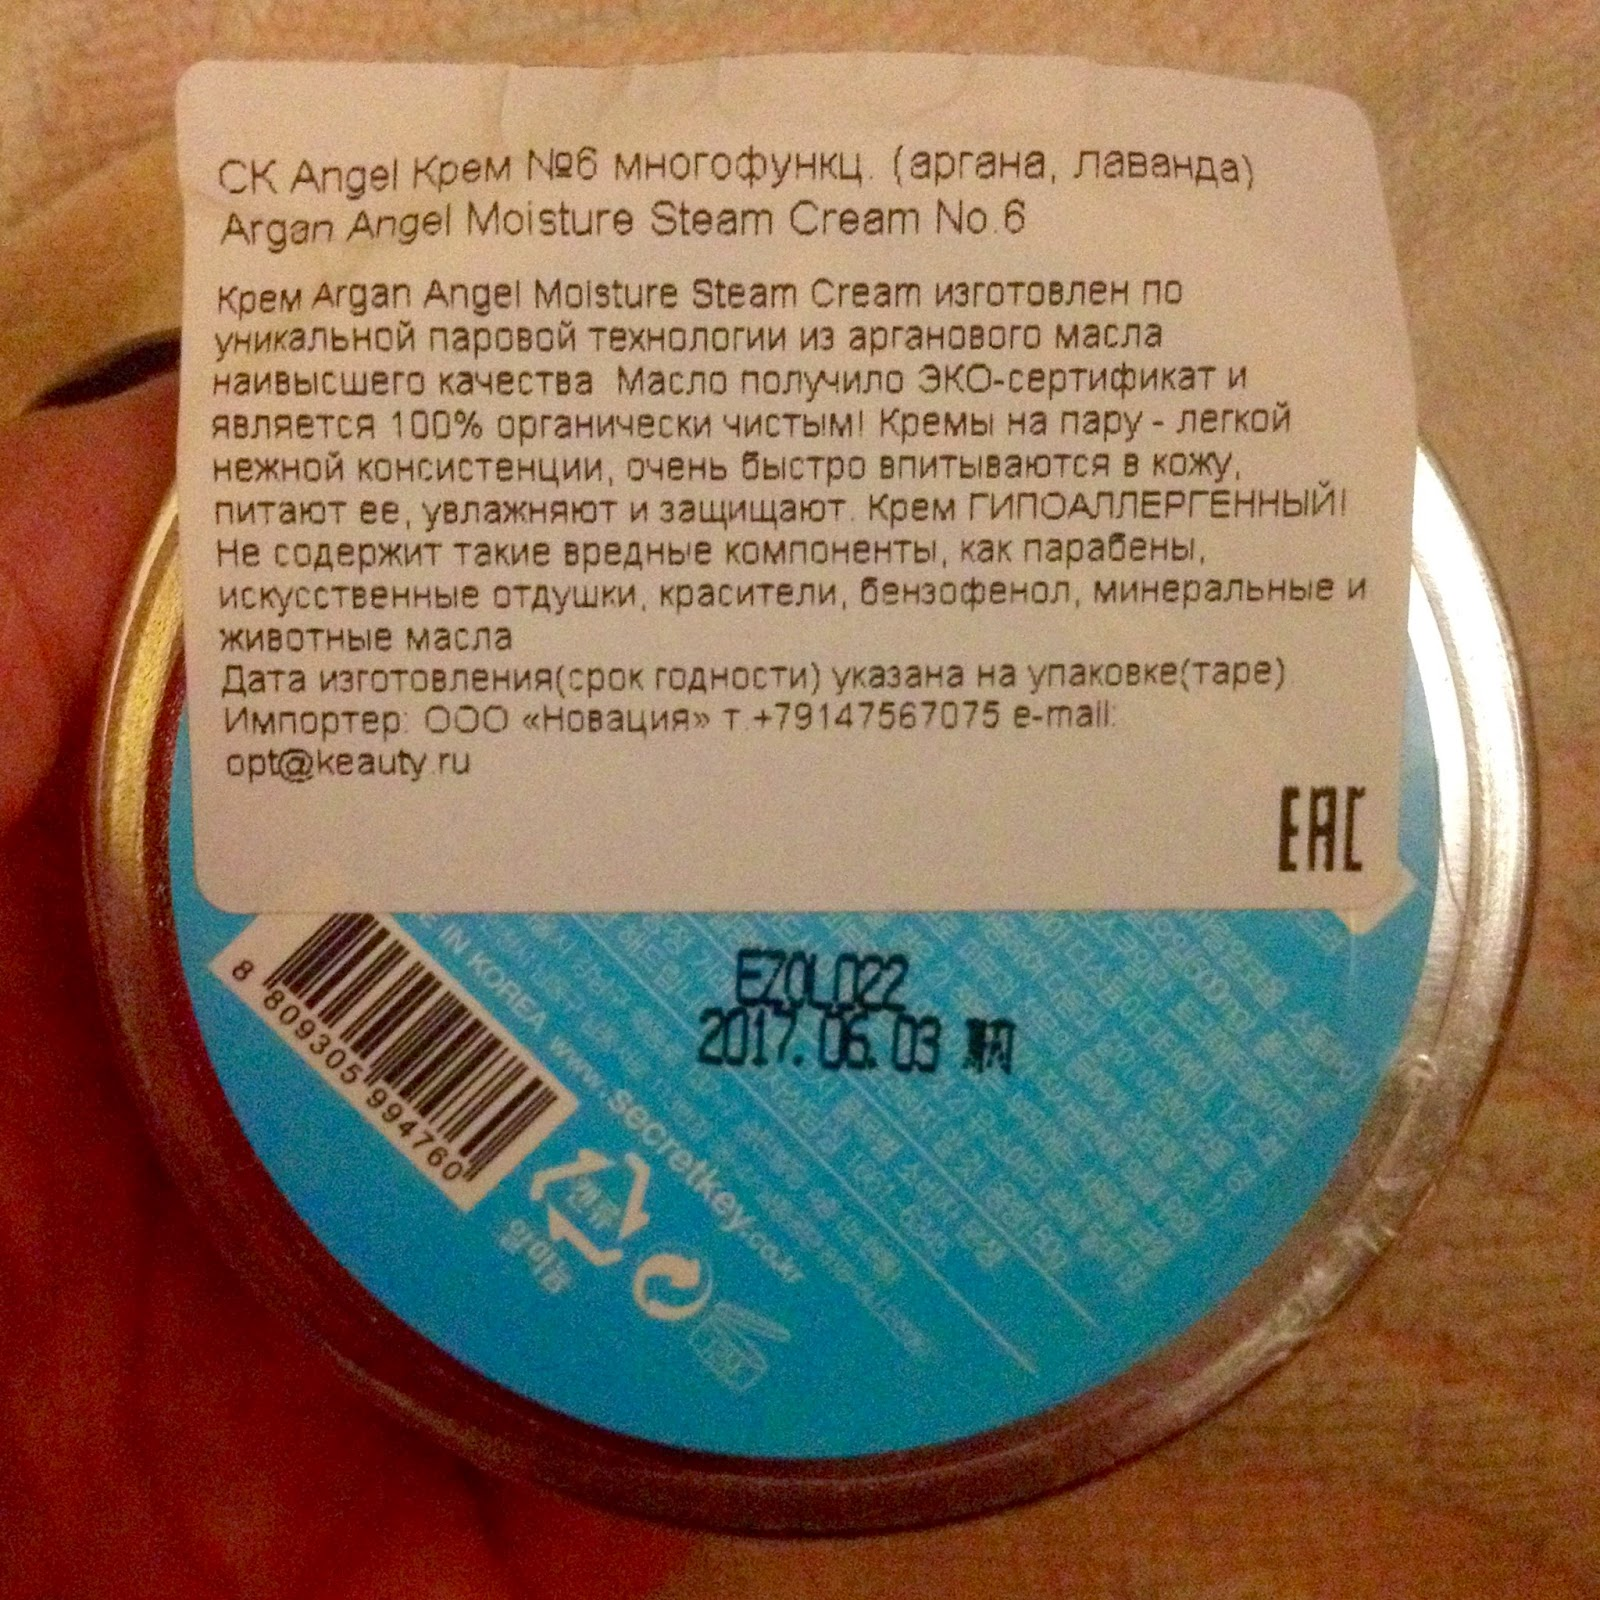 Secret Key Argan Angel Moisture Steam Cream